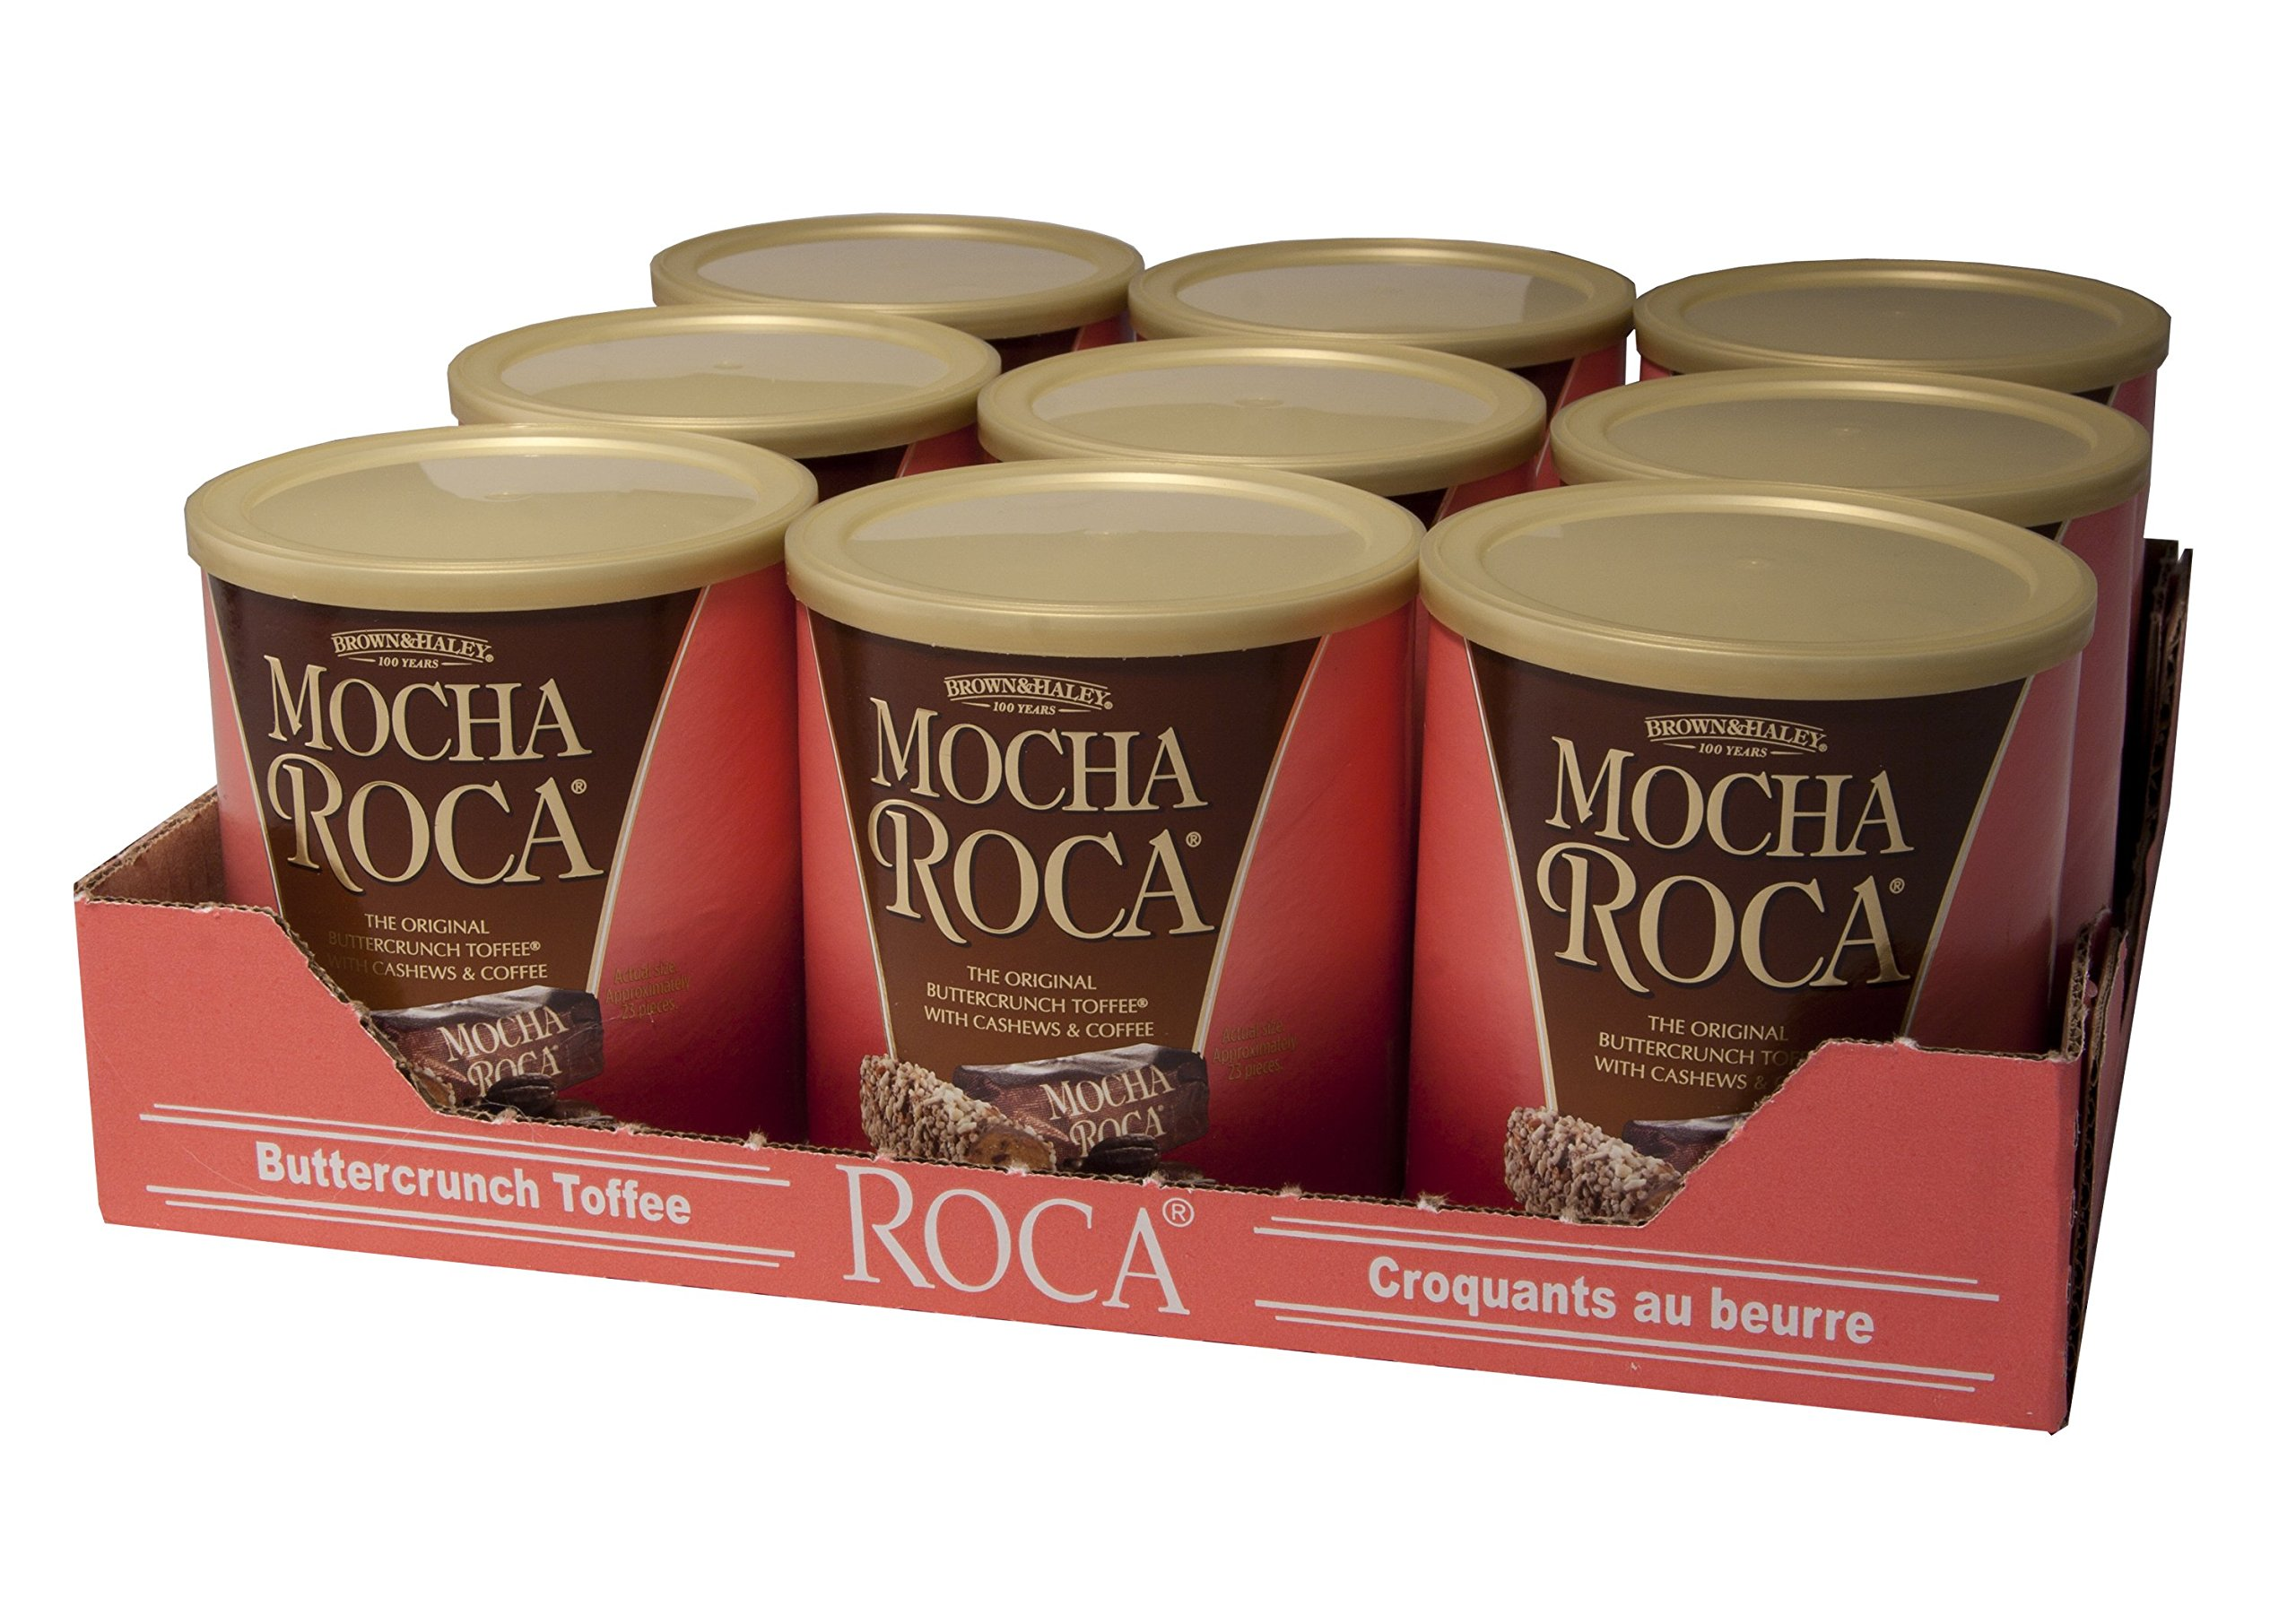 10 oz MOCHA ROCA Canister - Case of 9 Canisters by Roca